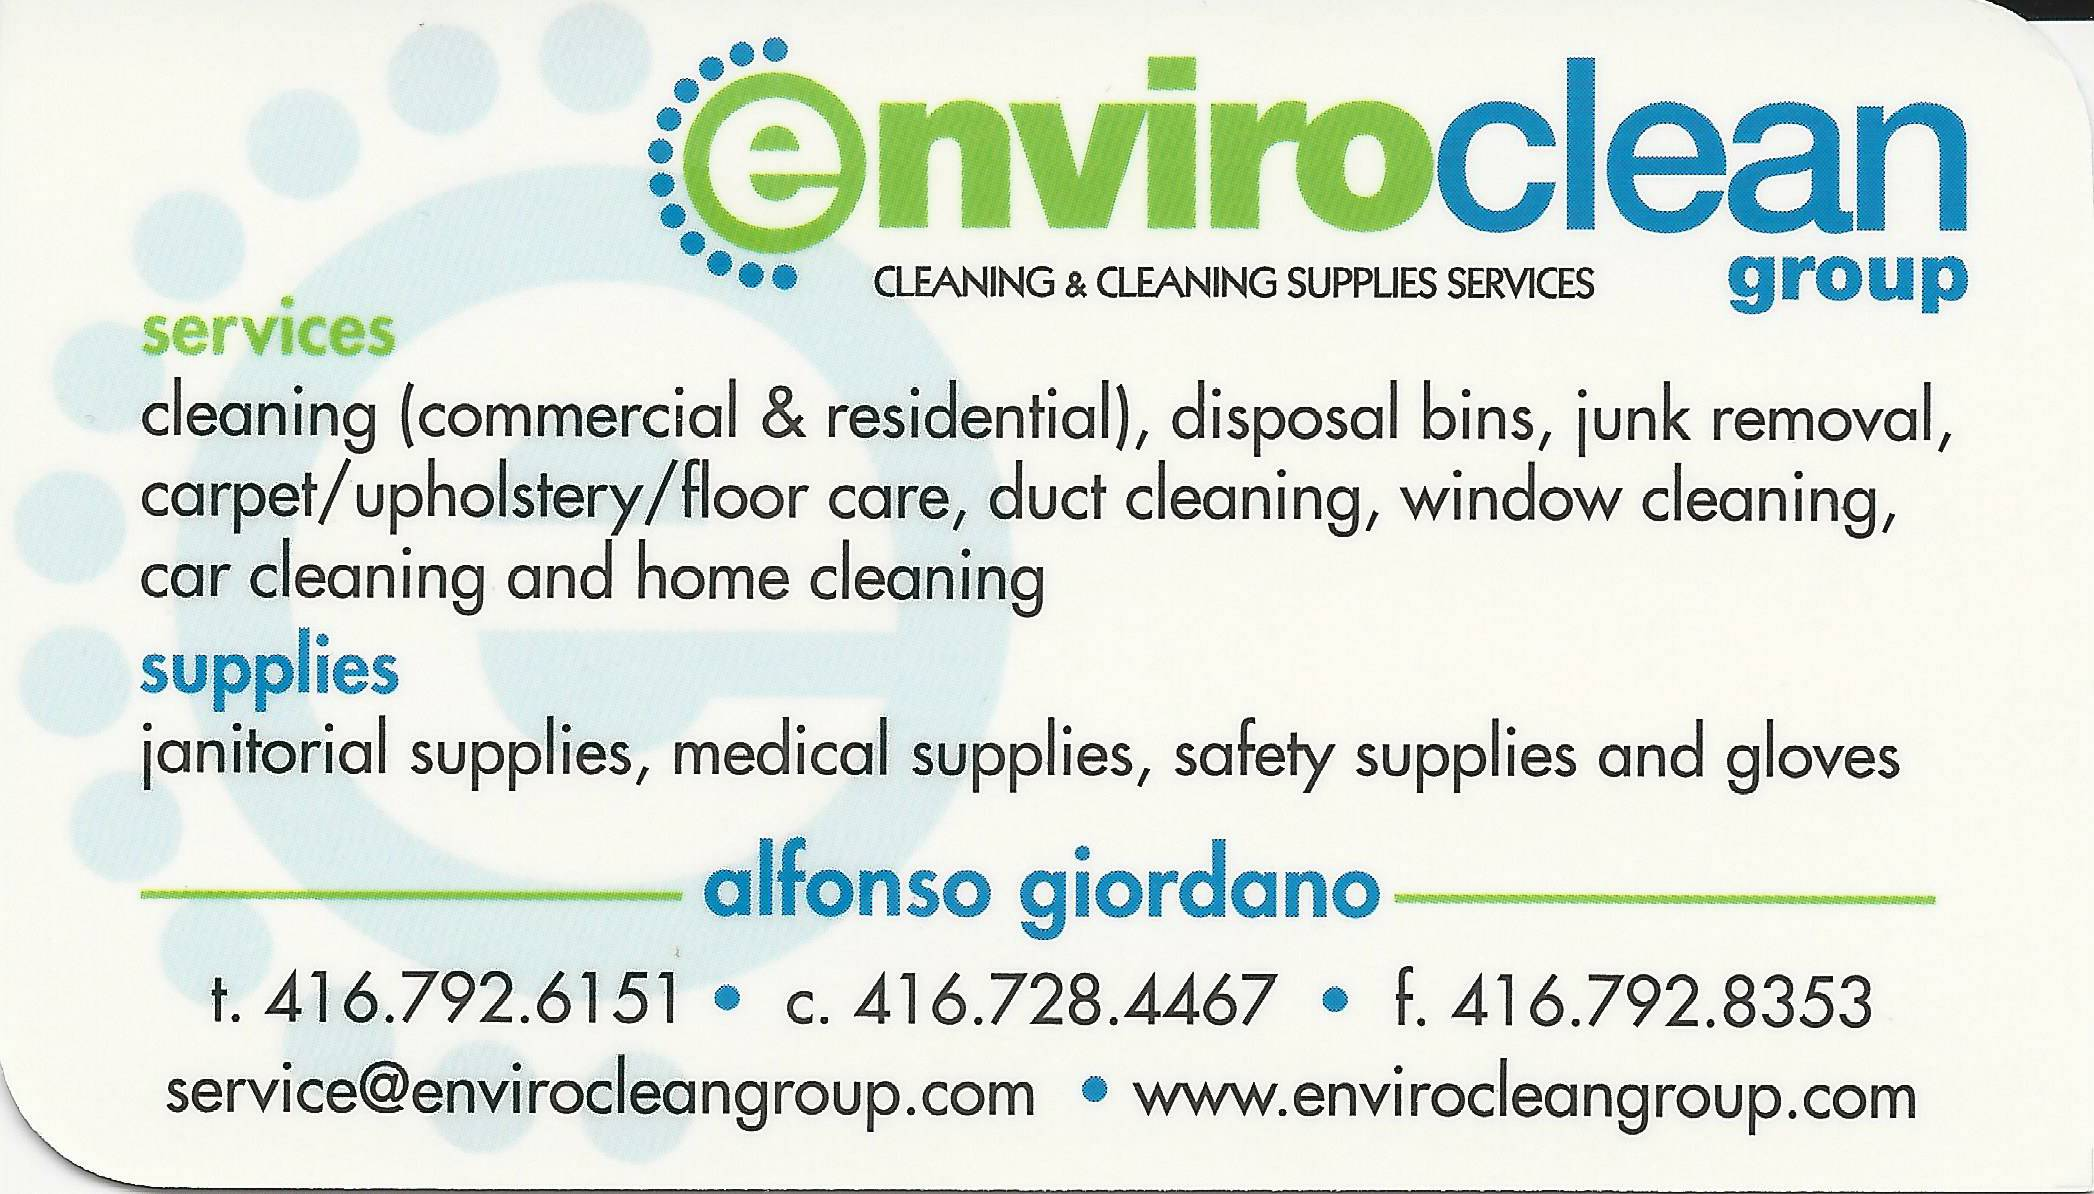 Eviroclean Group